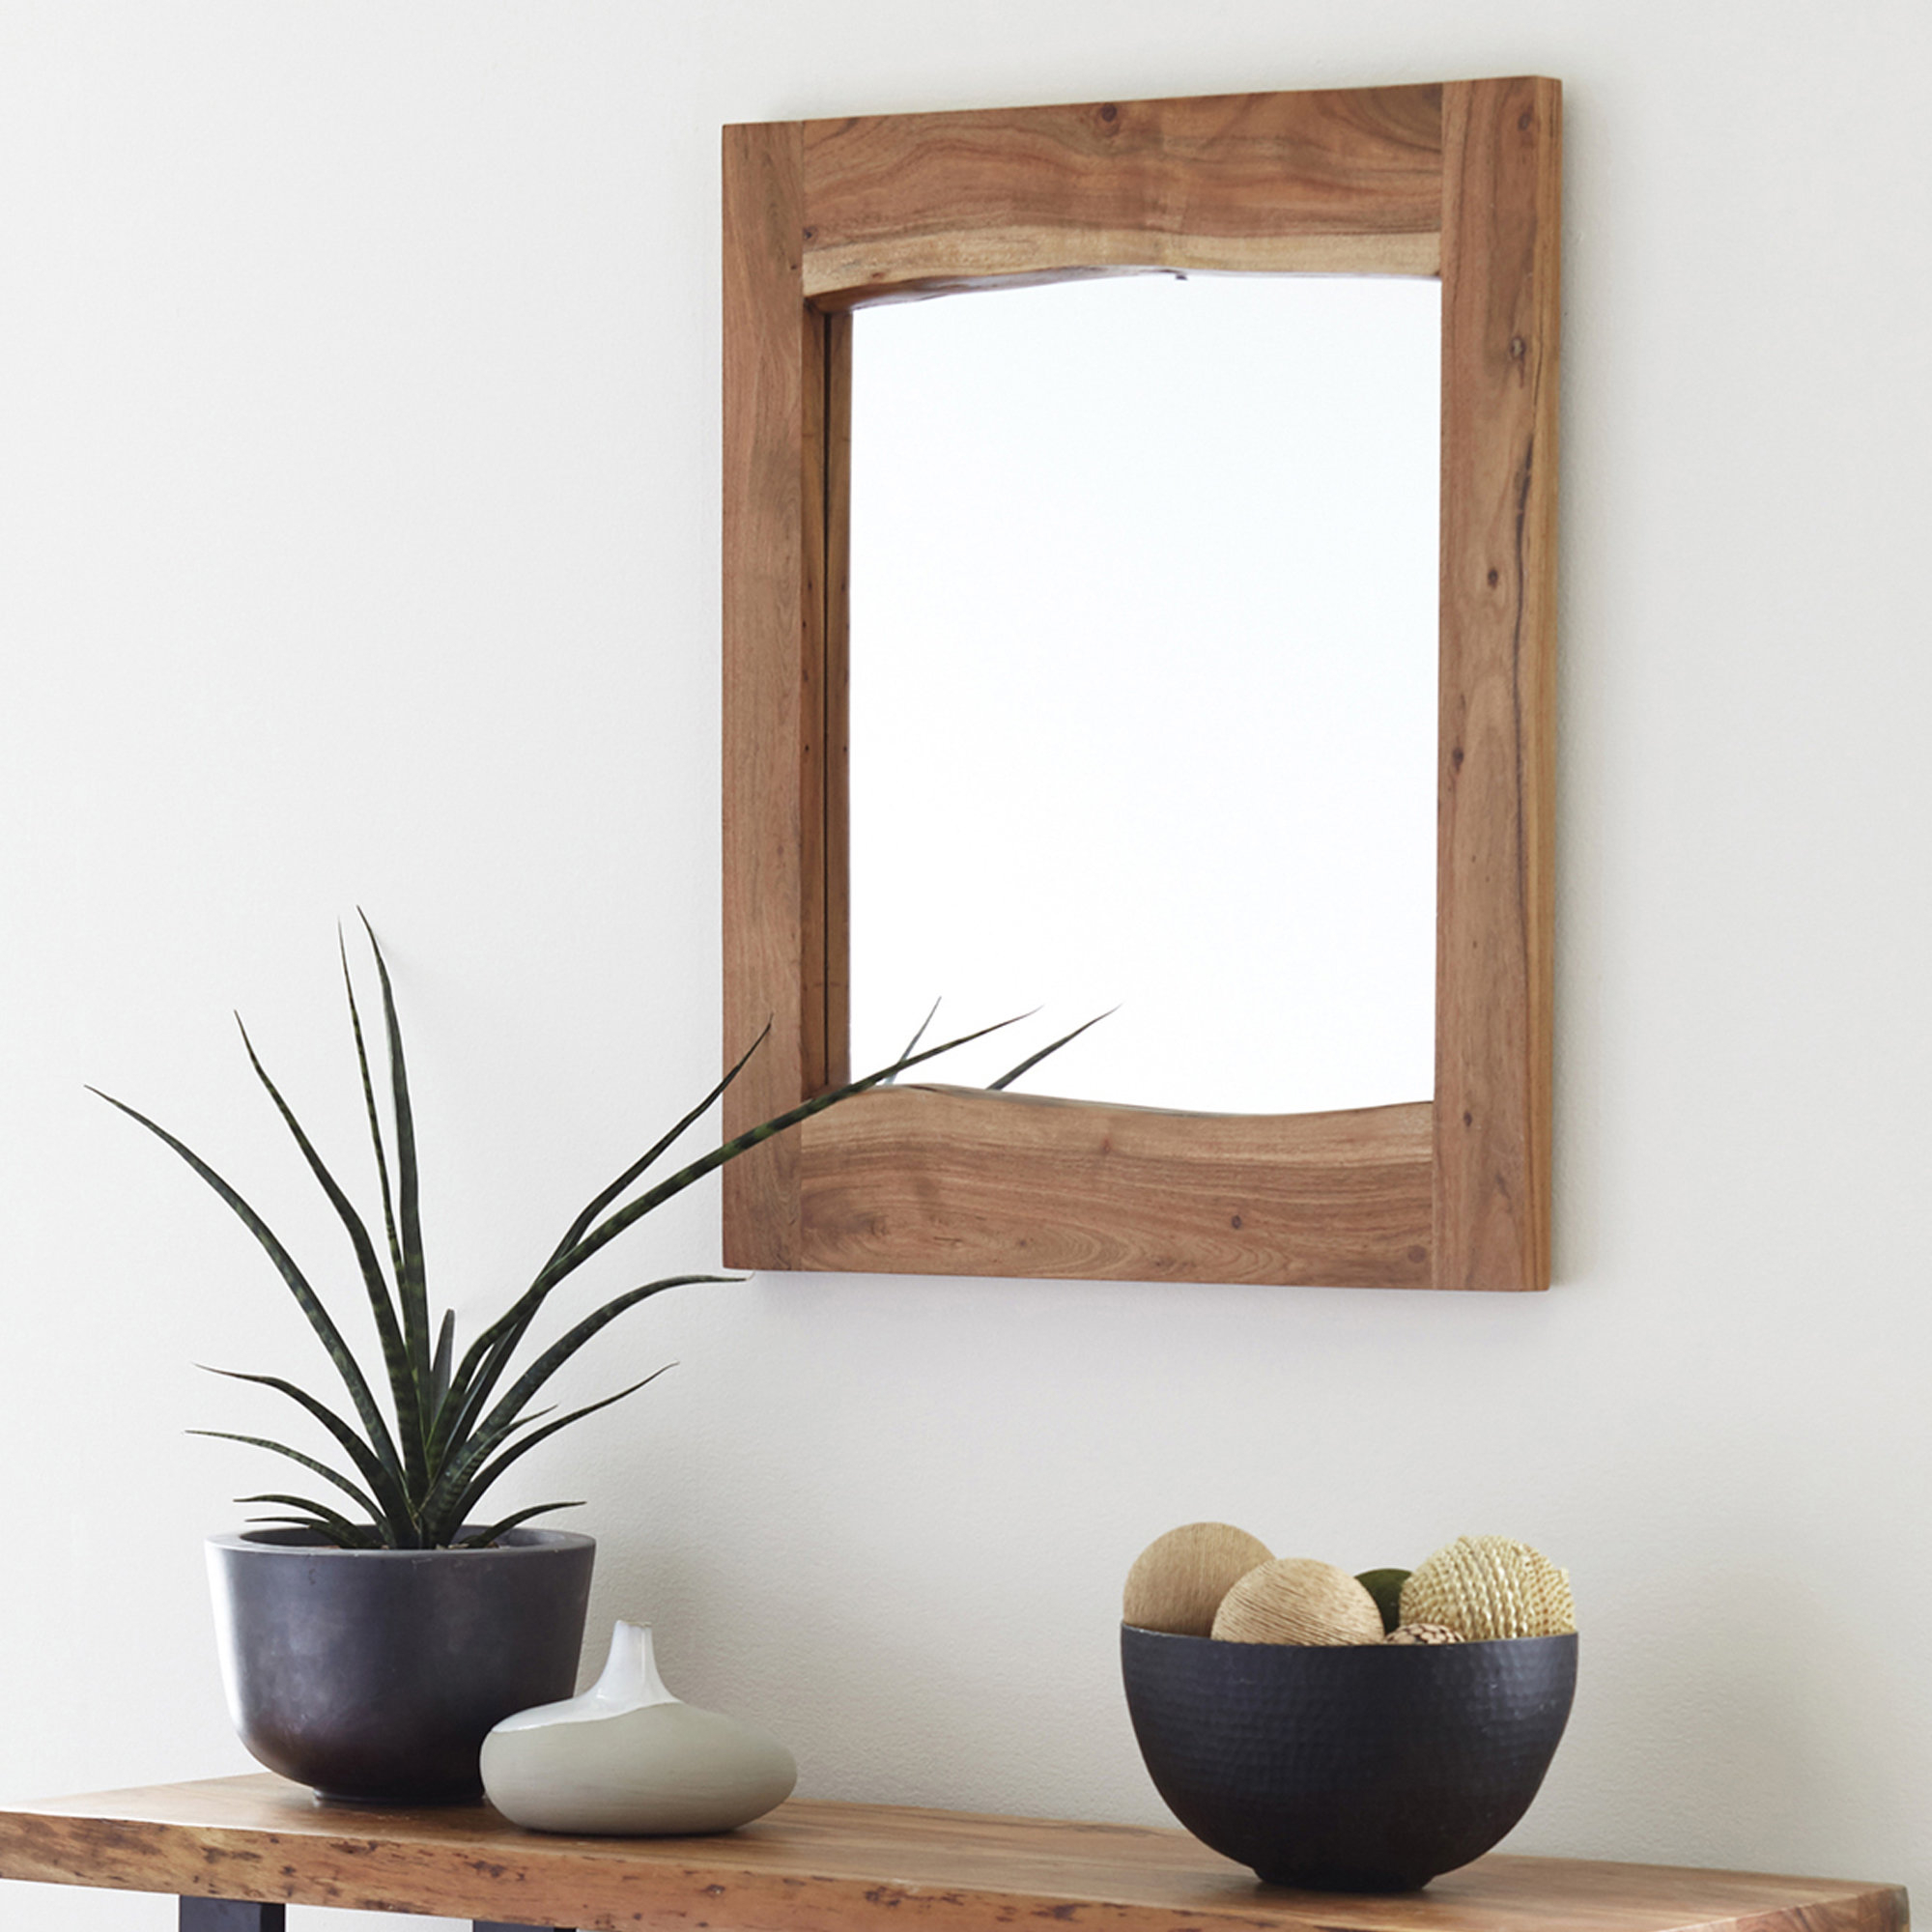 Bexton Live Edge Natural Wall Mirror & Reviews | Joss & Main With Regard To Stamey Wall Mirrors (Image 5 of 20)